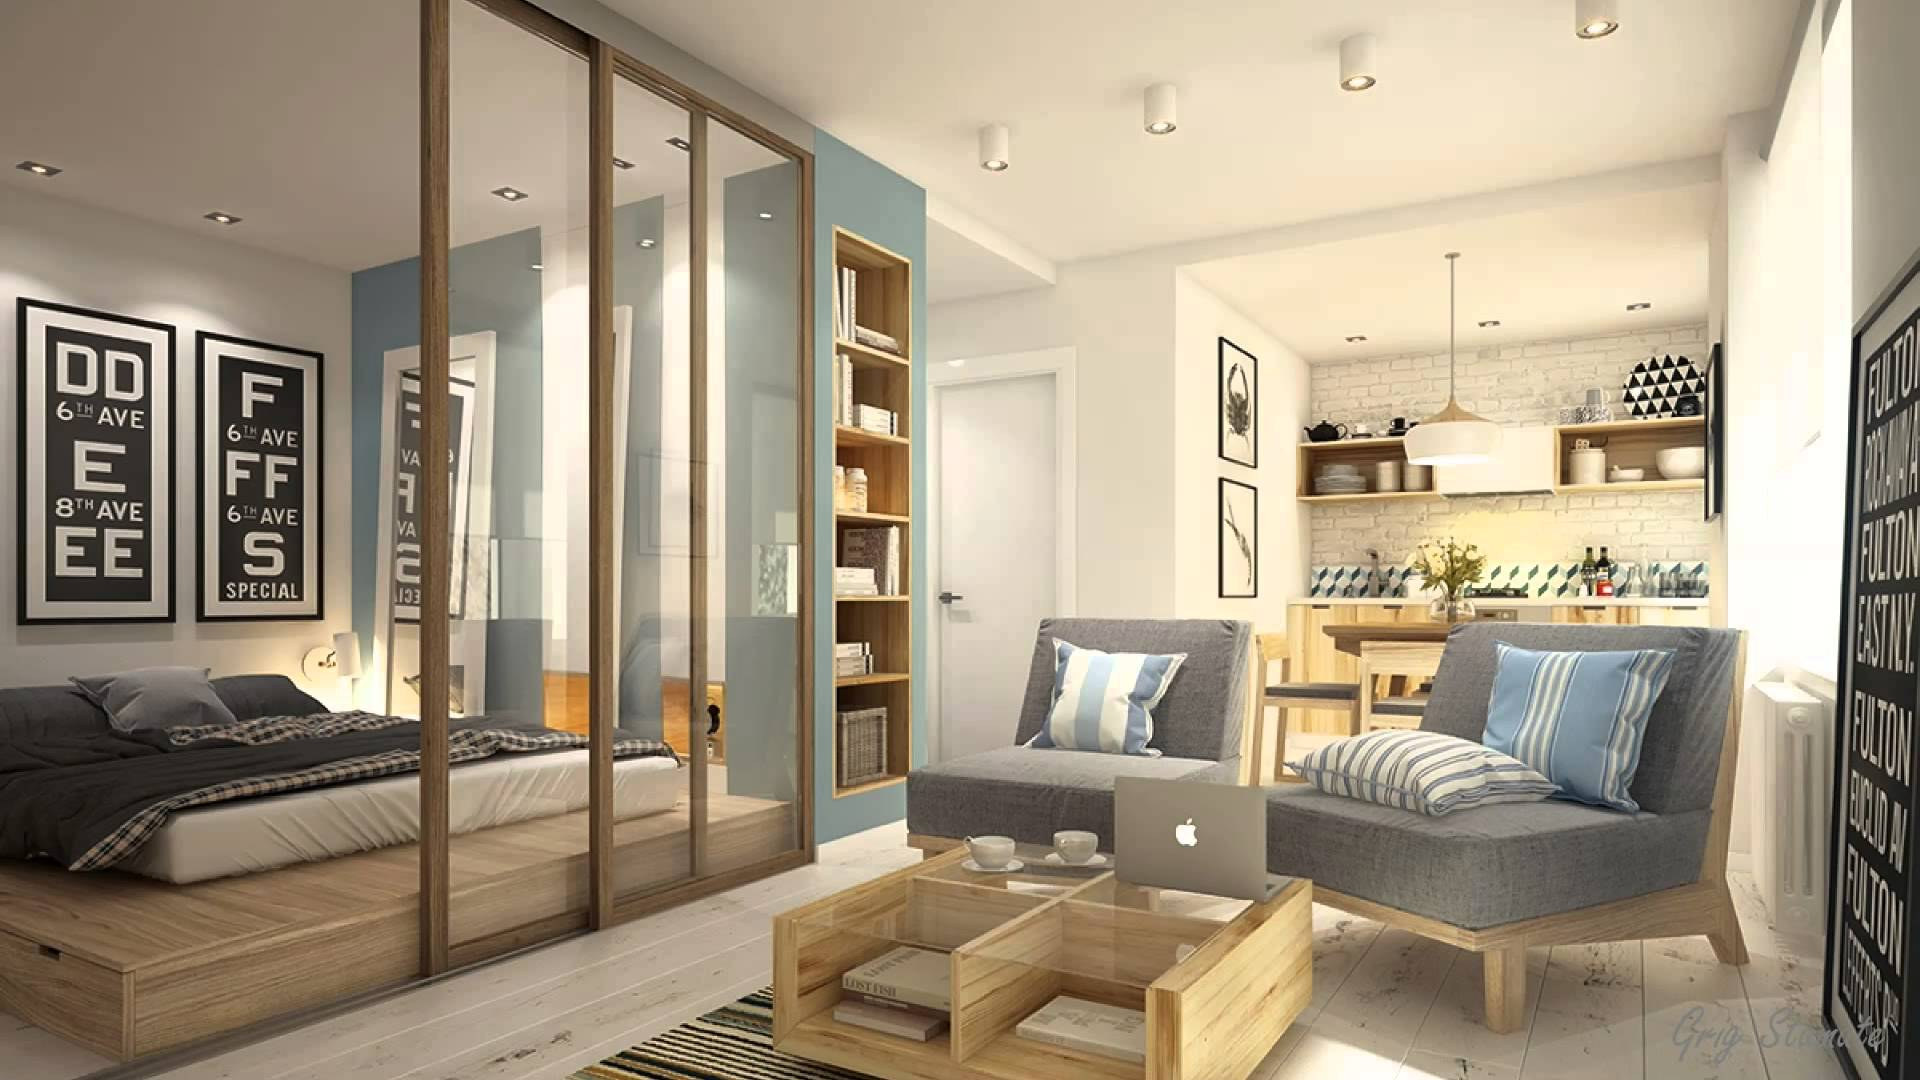 Designing a one bedroom apartment